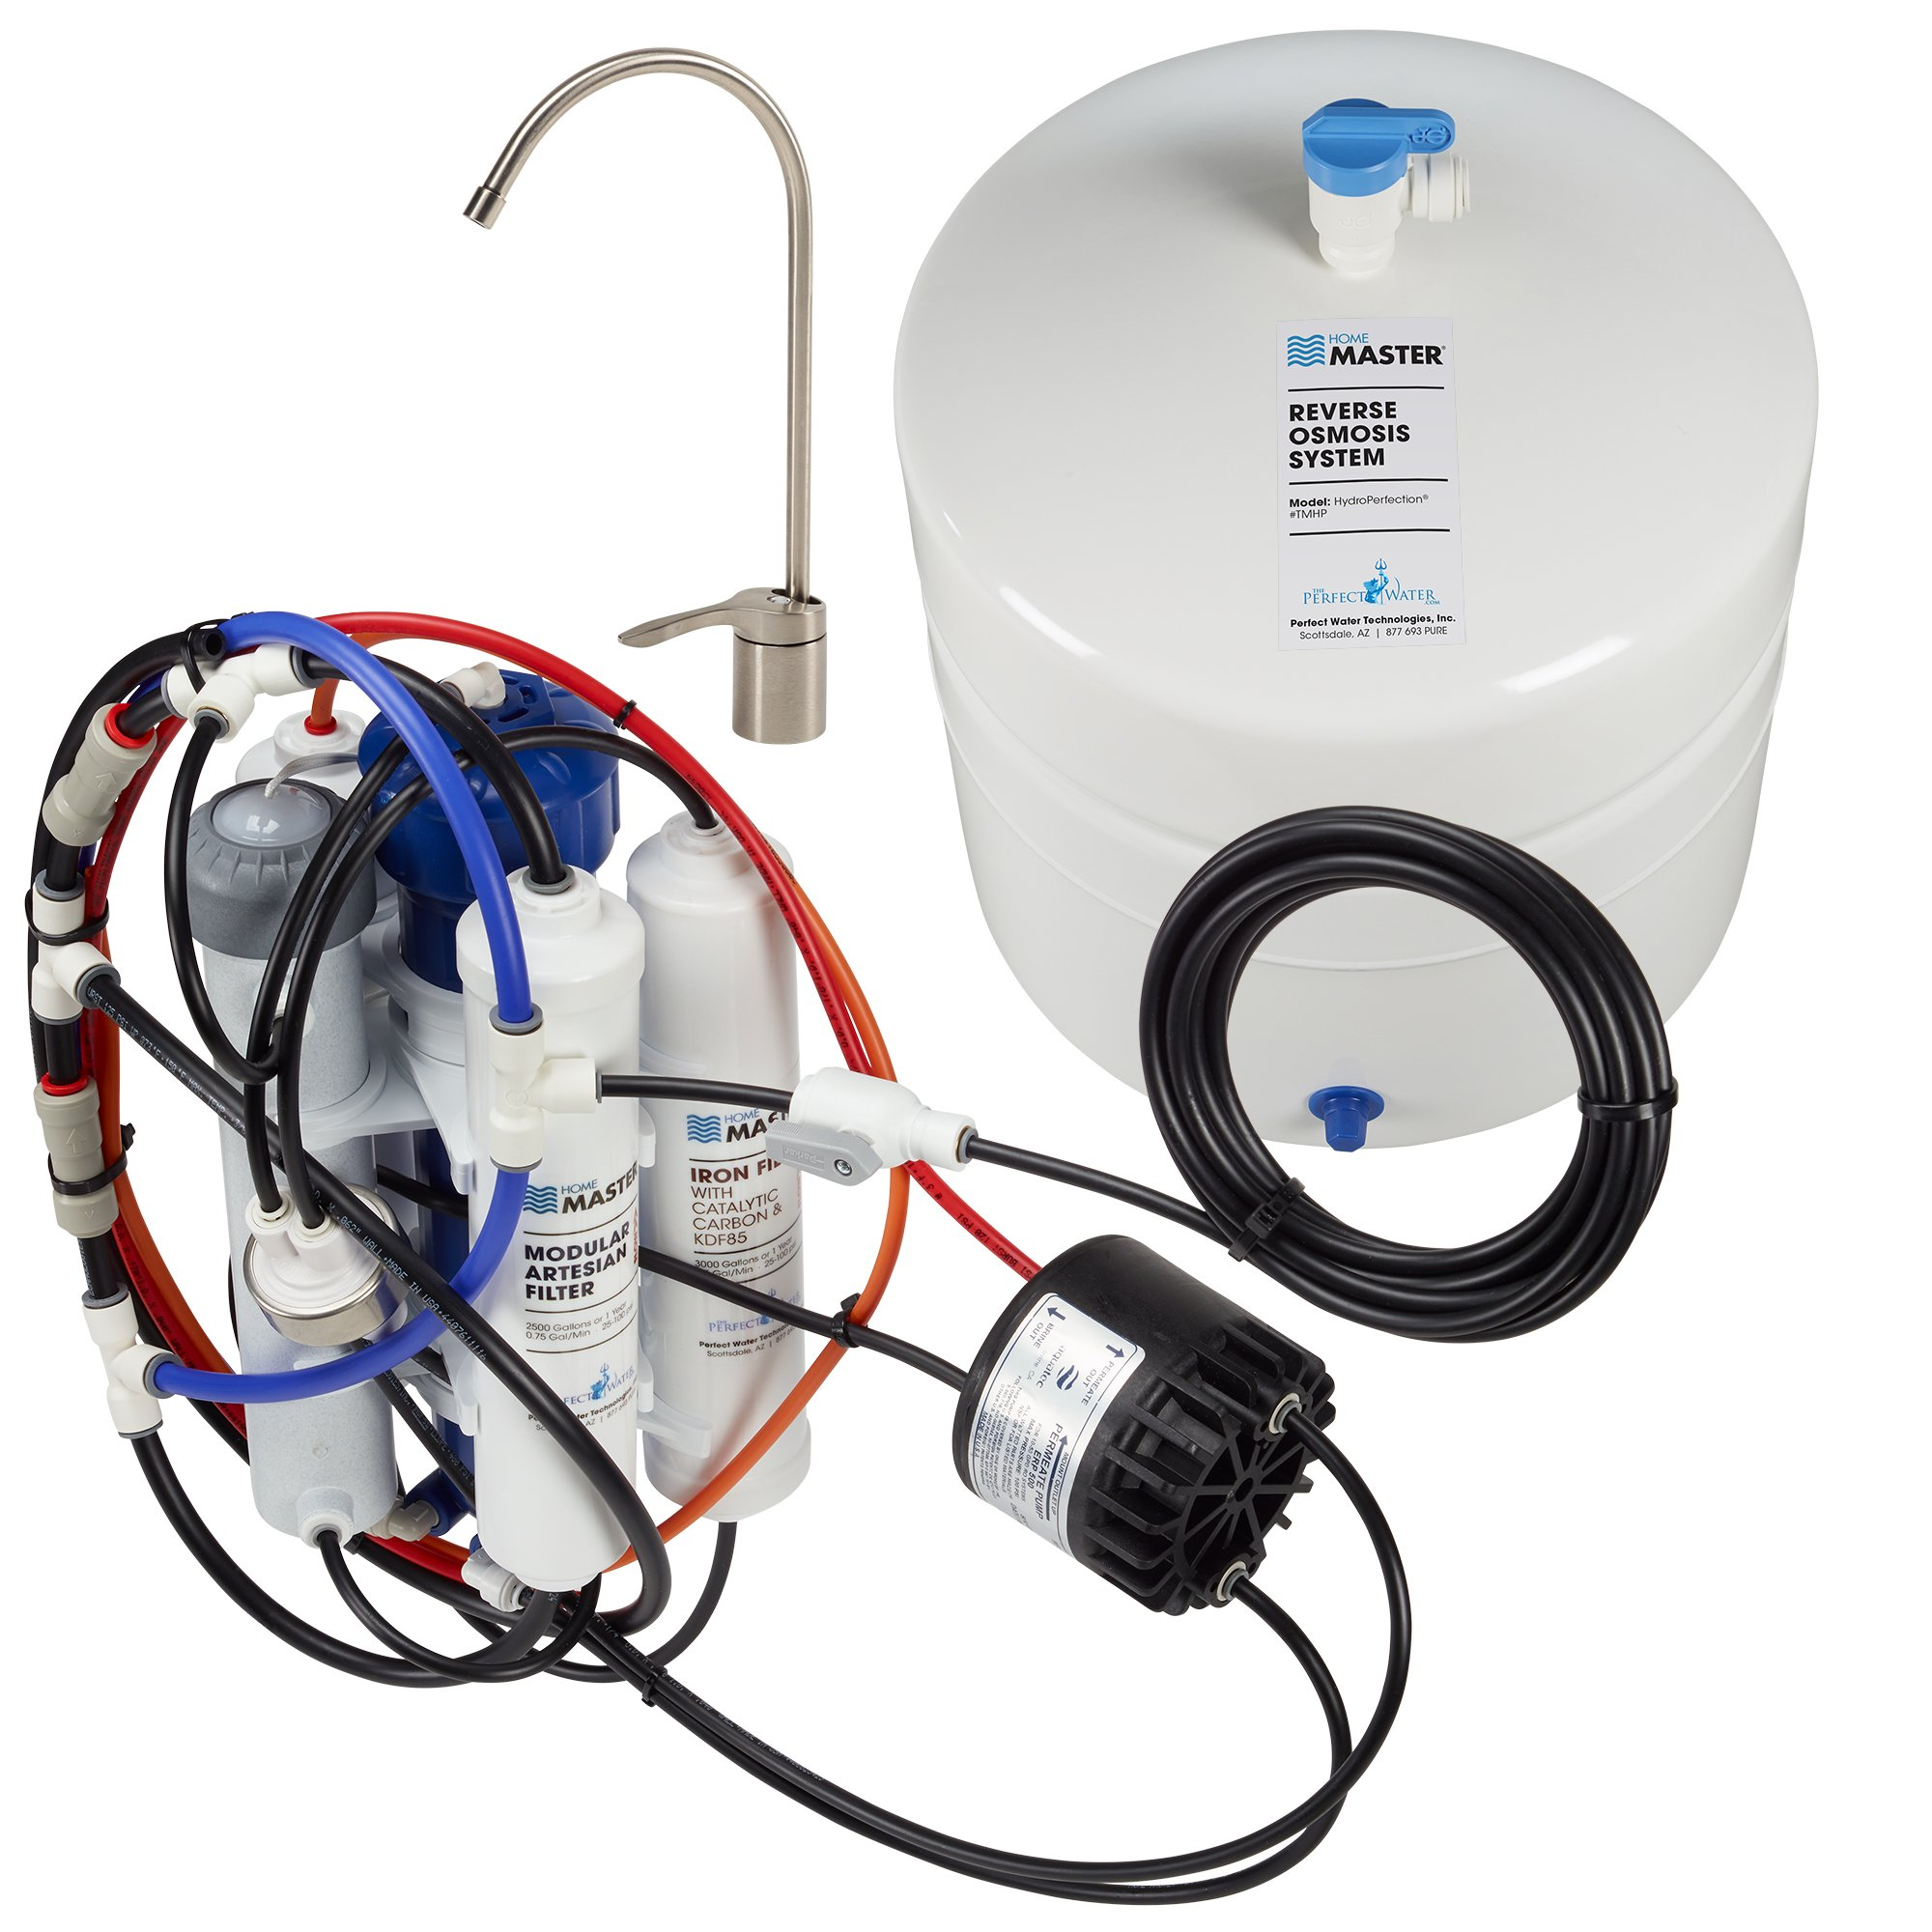 Home Master TMHP-L Hydroperfection Loaded Undersink Reverse Osmosis Water Filter System product image